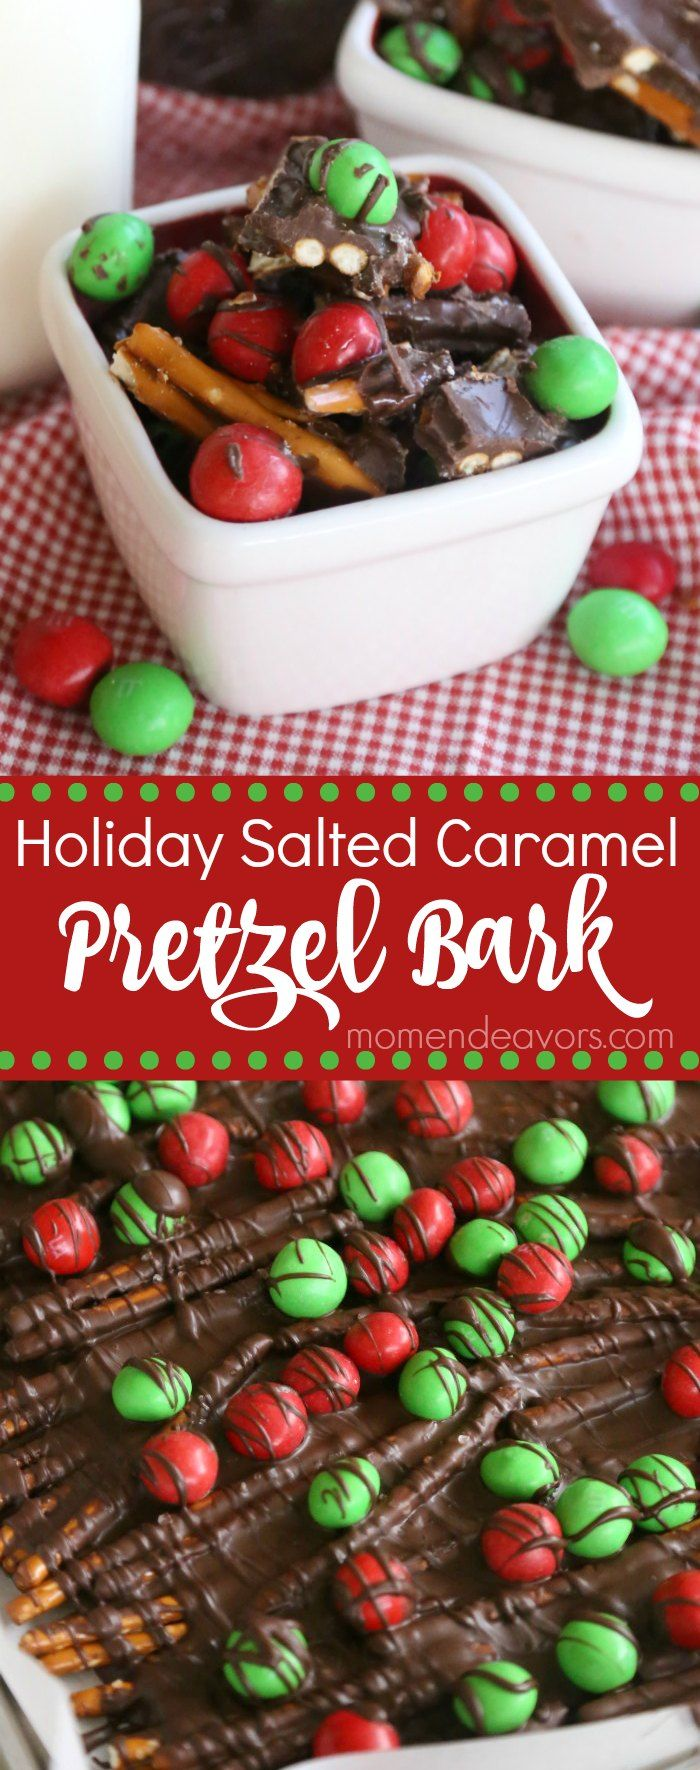 Easy, no-bake holiday salted caramel pretzel bark recipe - perfect for holiday parties and edible holiday gifts! @MilkLife @mmschocolate #SweetnessToShare #MilkLife AD